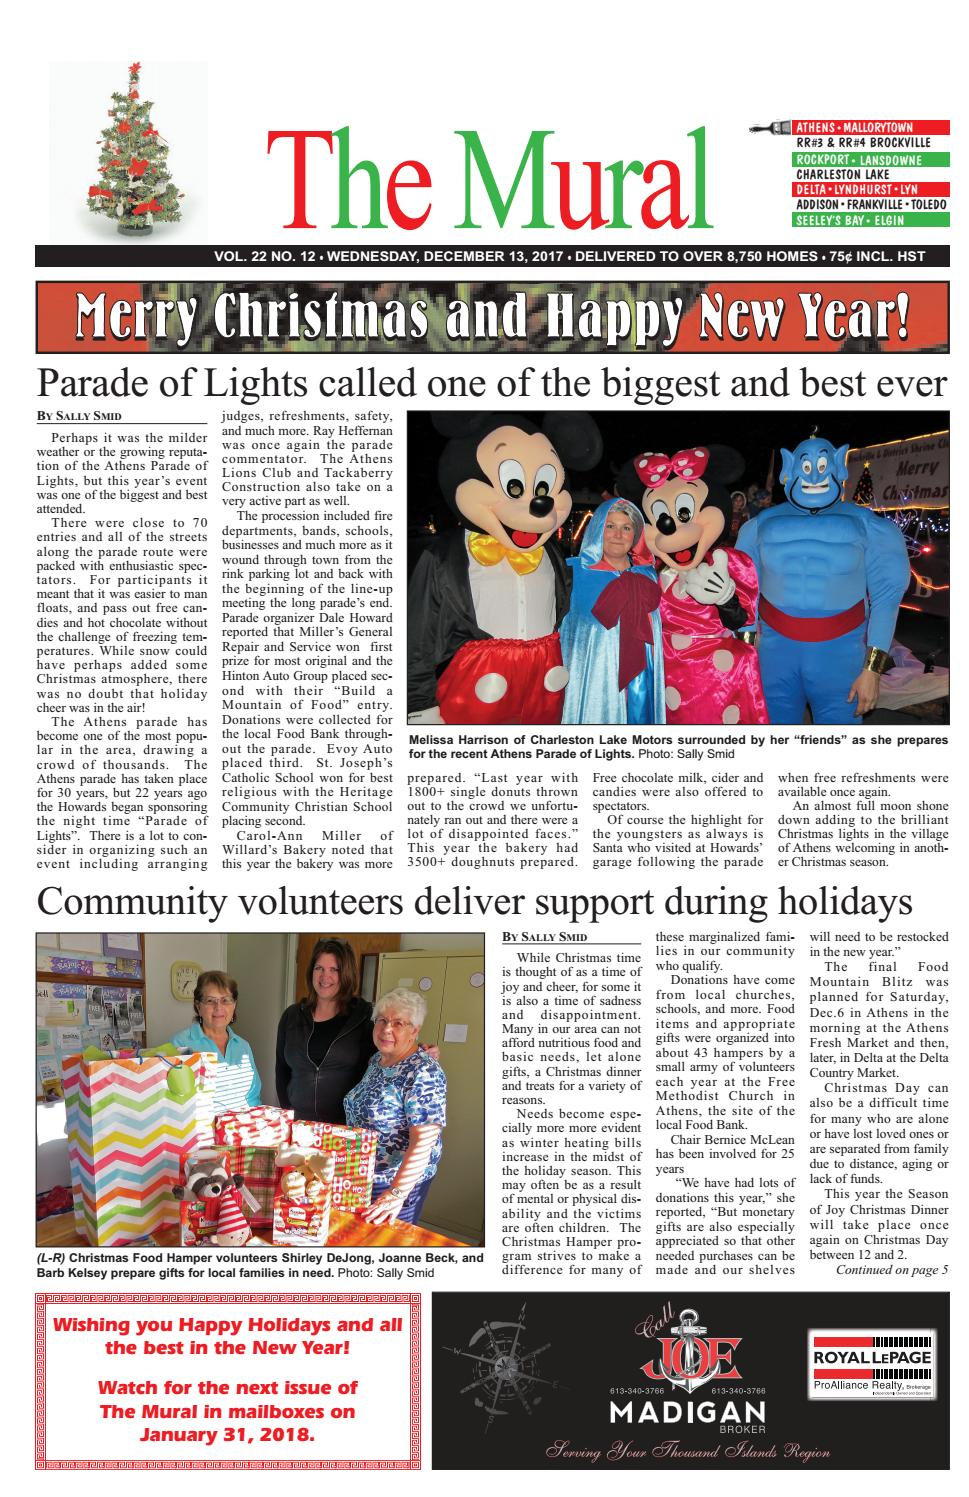 The Mural December 13, 2017 by The Mural - issuu